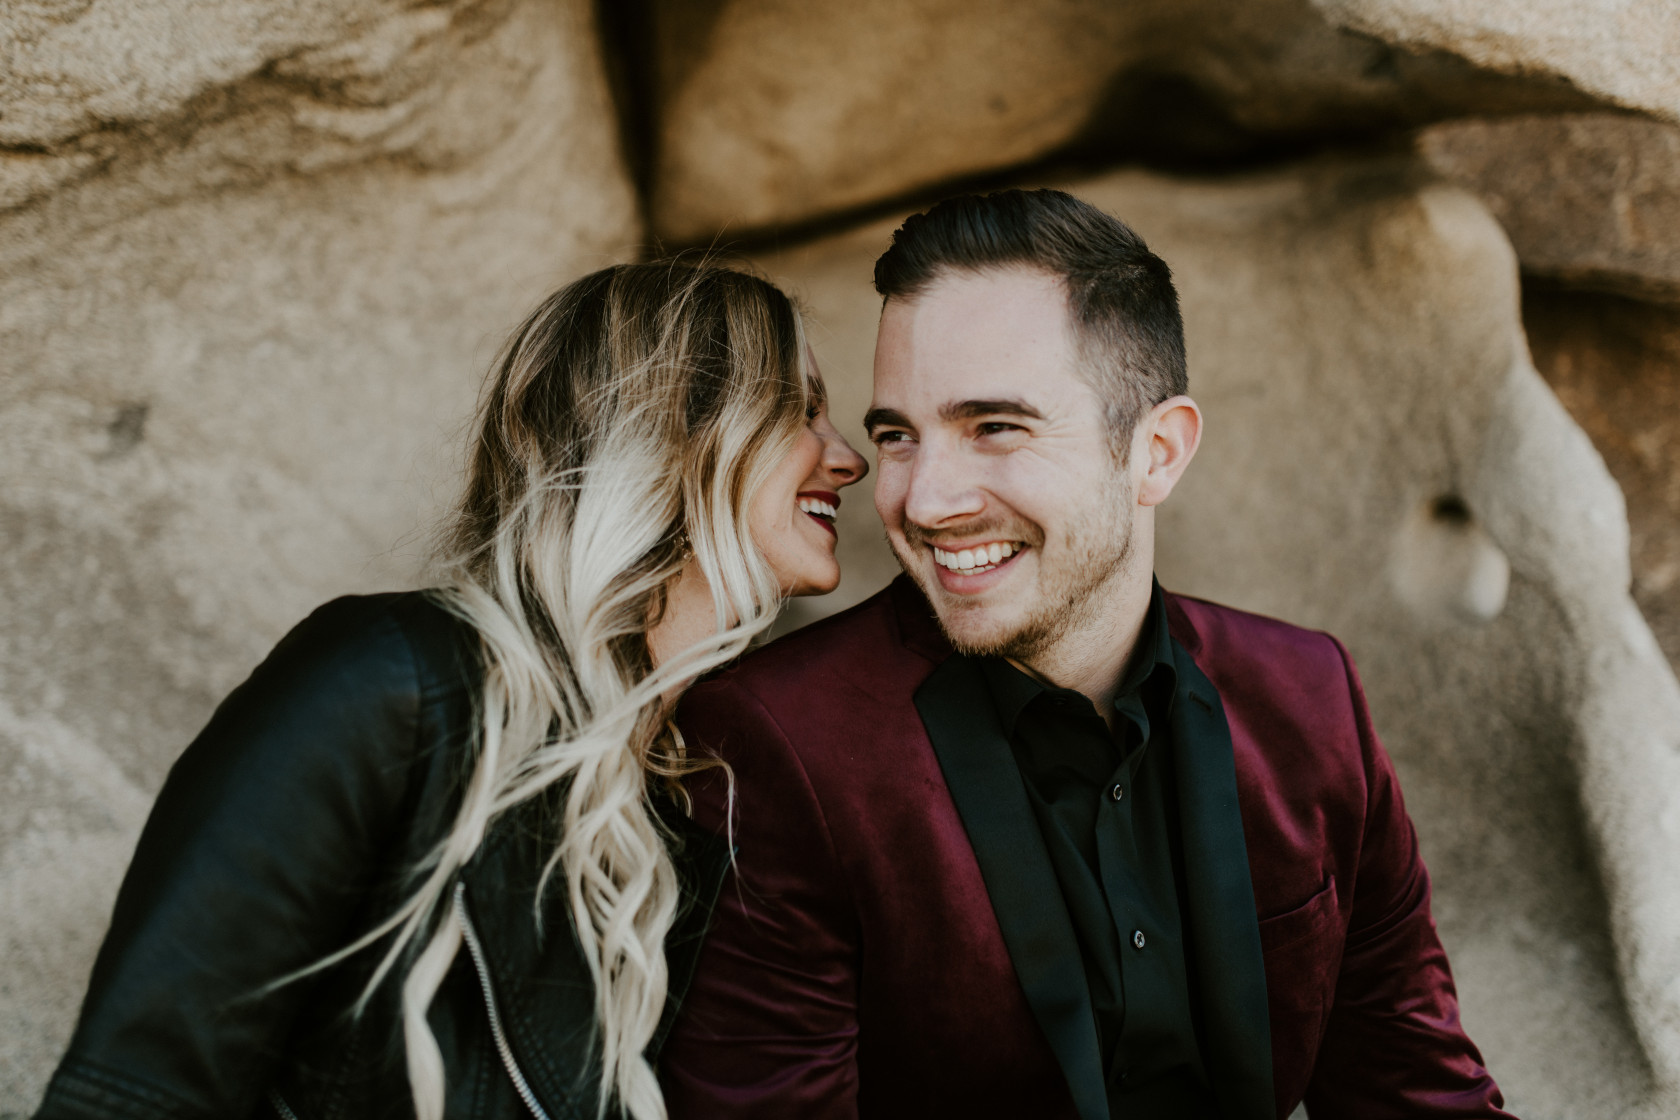 Alyssa goes in to kiss Jeremy. Elopement wedding photography at Joshua Tree National Park by Sienna Plus Josh.